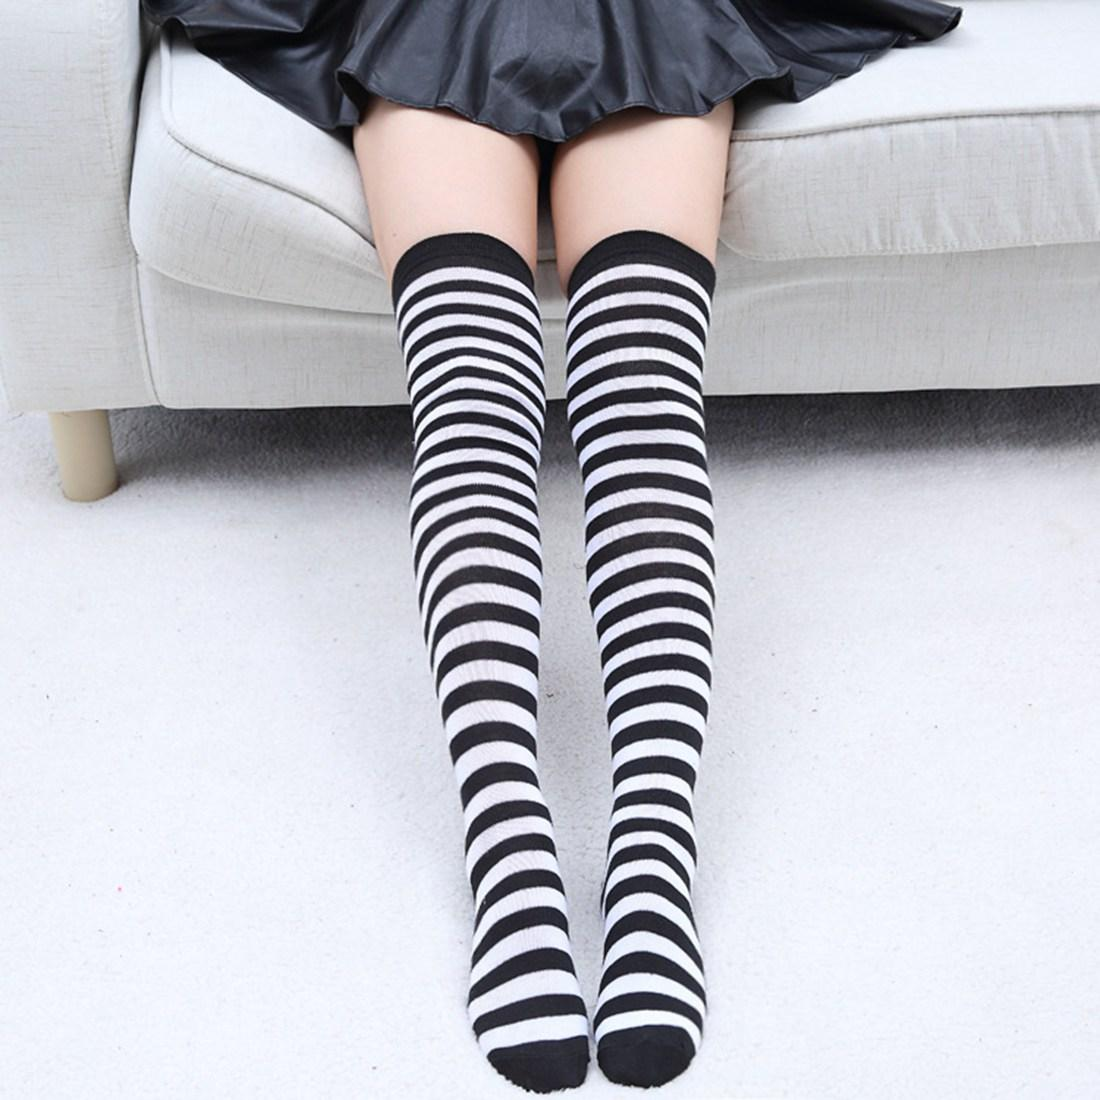 247e3011ea3 Wholesale- Black White Striped Long Socks Women Warm Cotton Over The Knee  Socks 2016 Stylish Sexy Thigh High Stockings Autumn Winter Medias